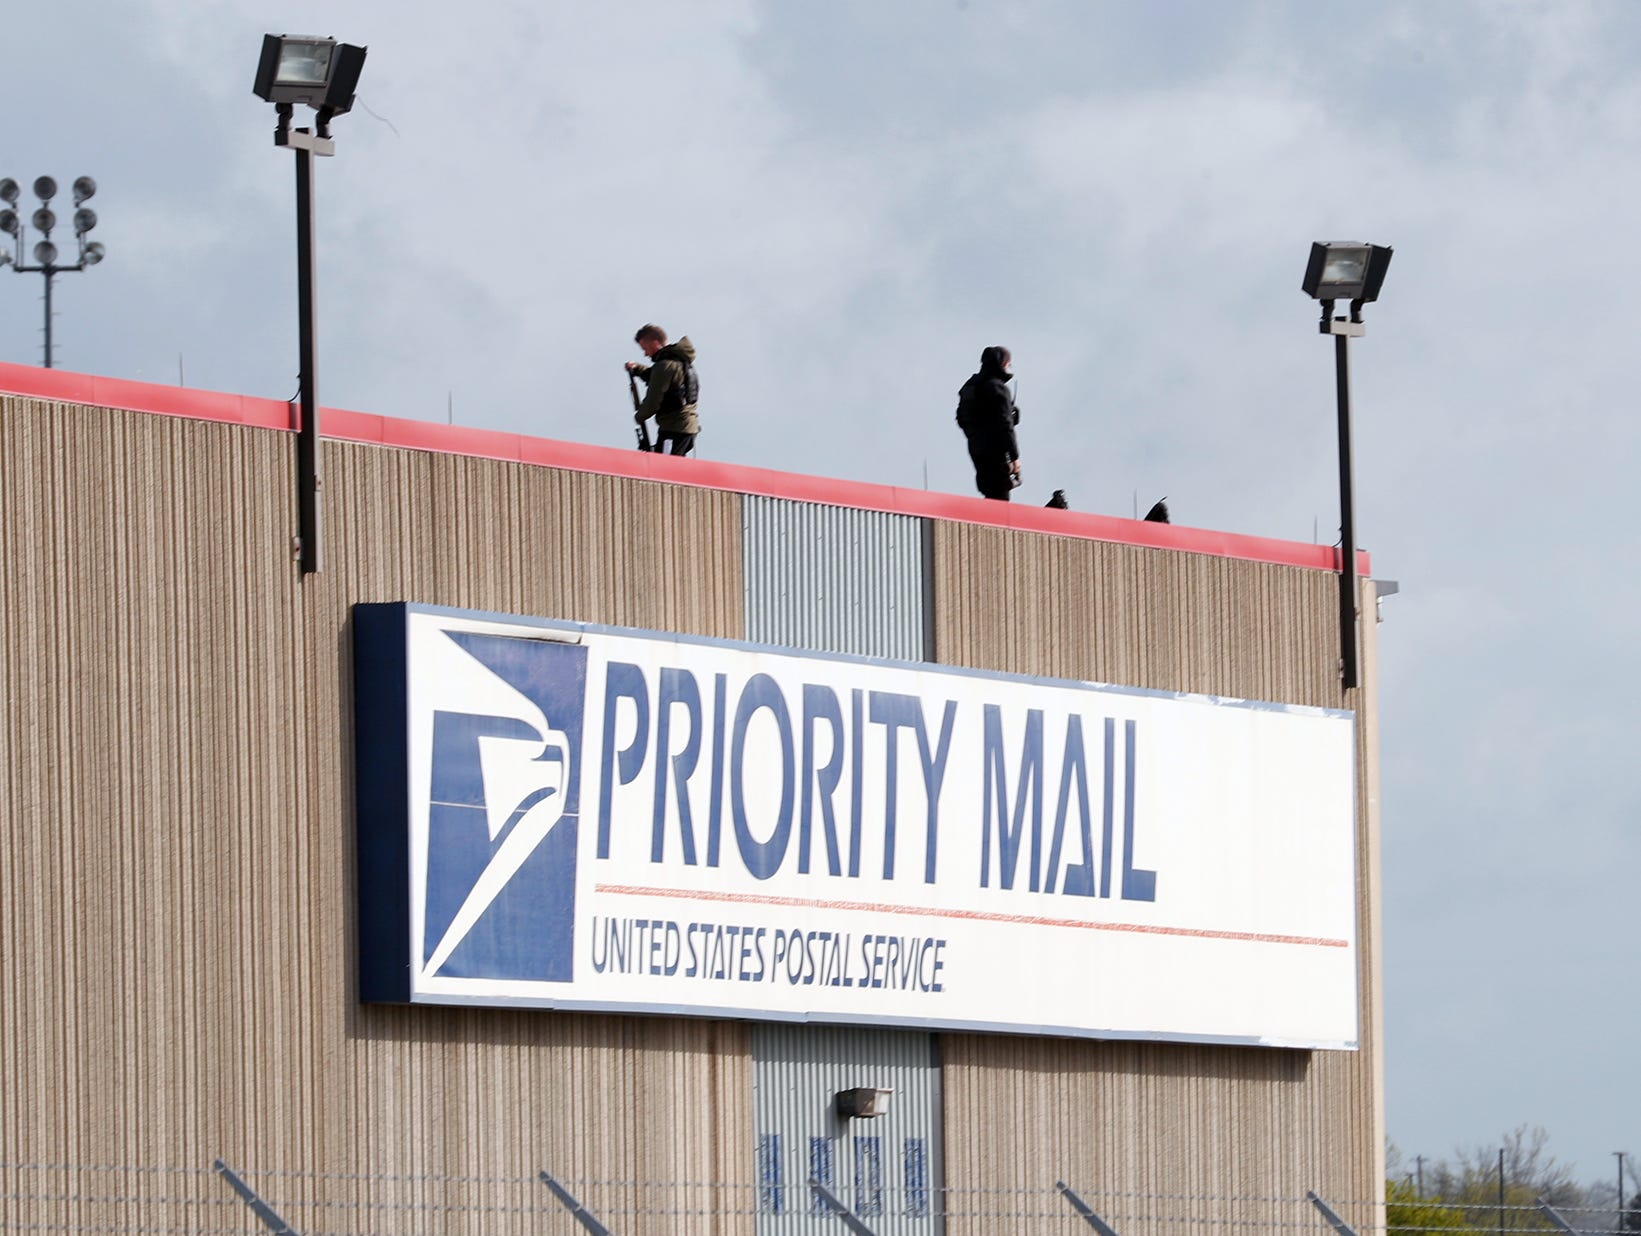 Snipers set up on the roof of the United States Postal Service hub at the Indianapolis International Airport prior to the arrival of President Donald Trump and Vice President Mike Pence on April 26, 2019.